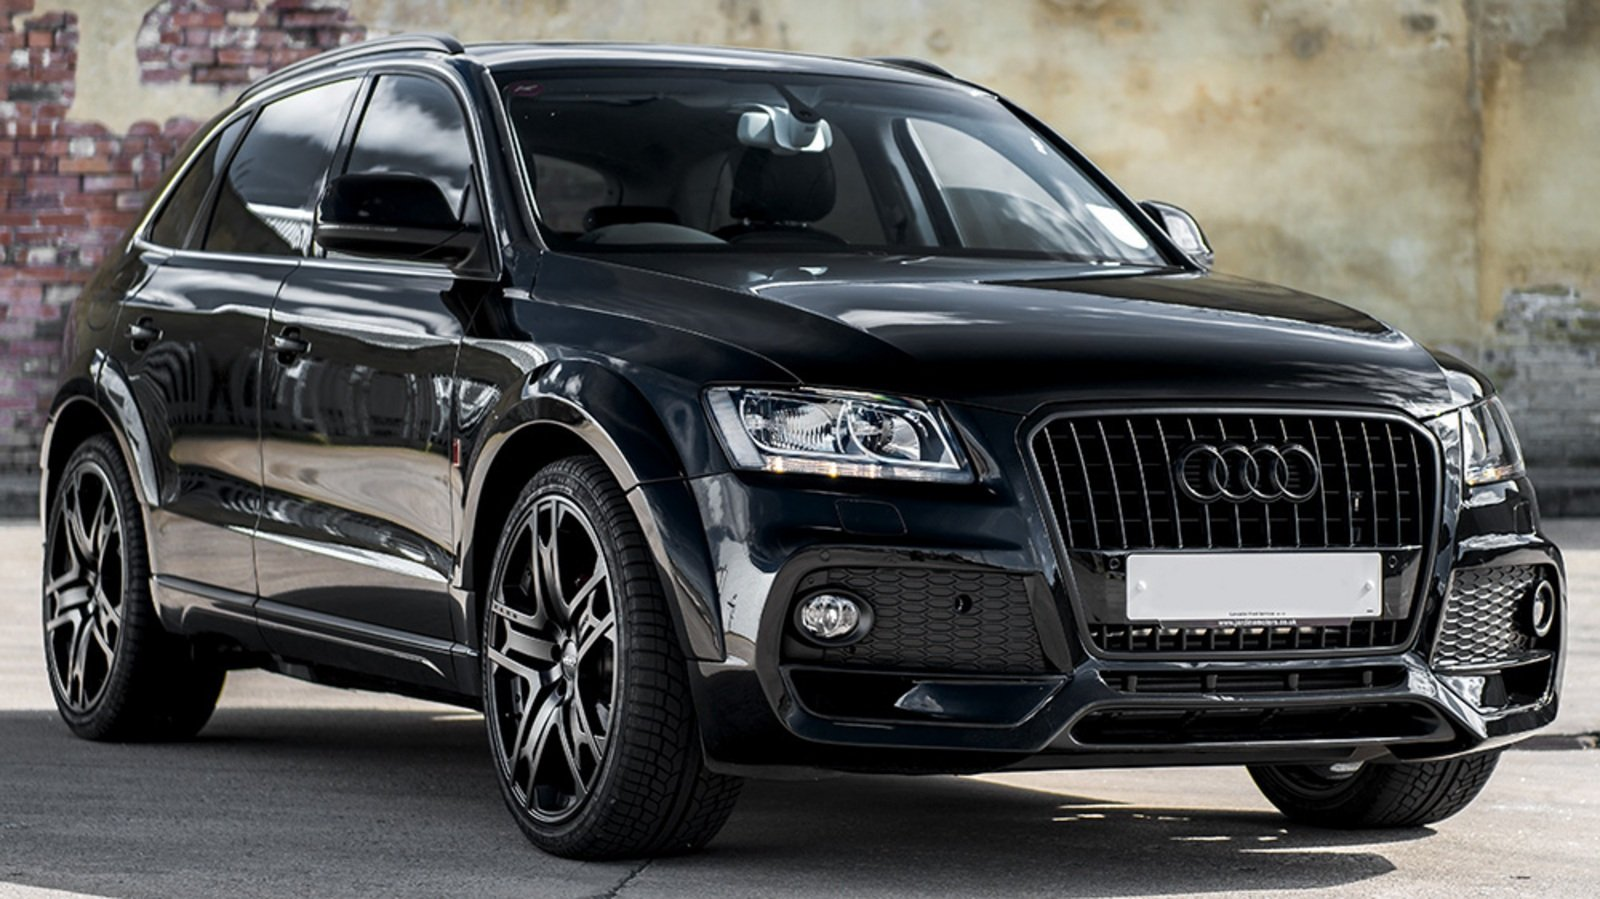 2014 audi q5 2 0 tdi quattro s tronic wide track by kahn design review top speed. Black Bedroom Furniture Sets. Home Design Ideas